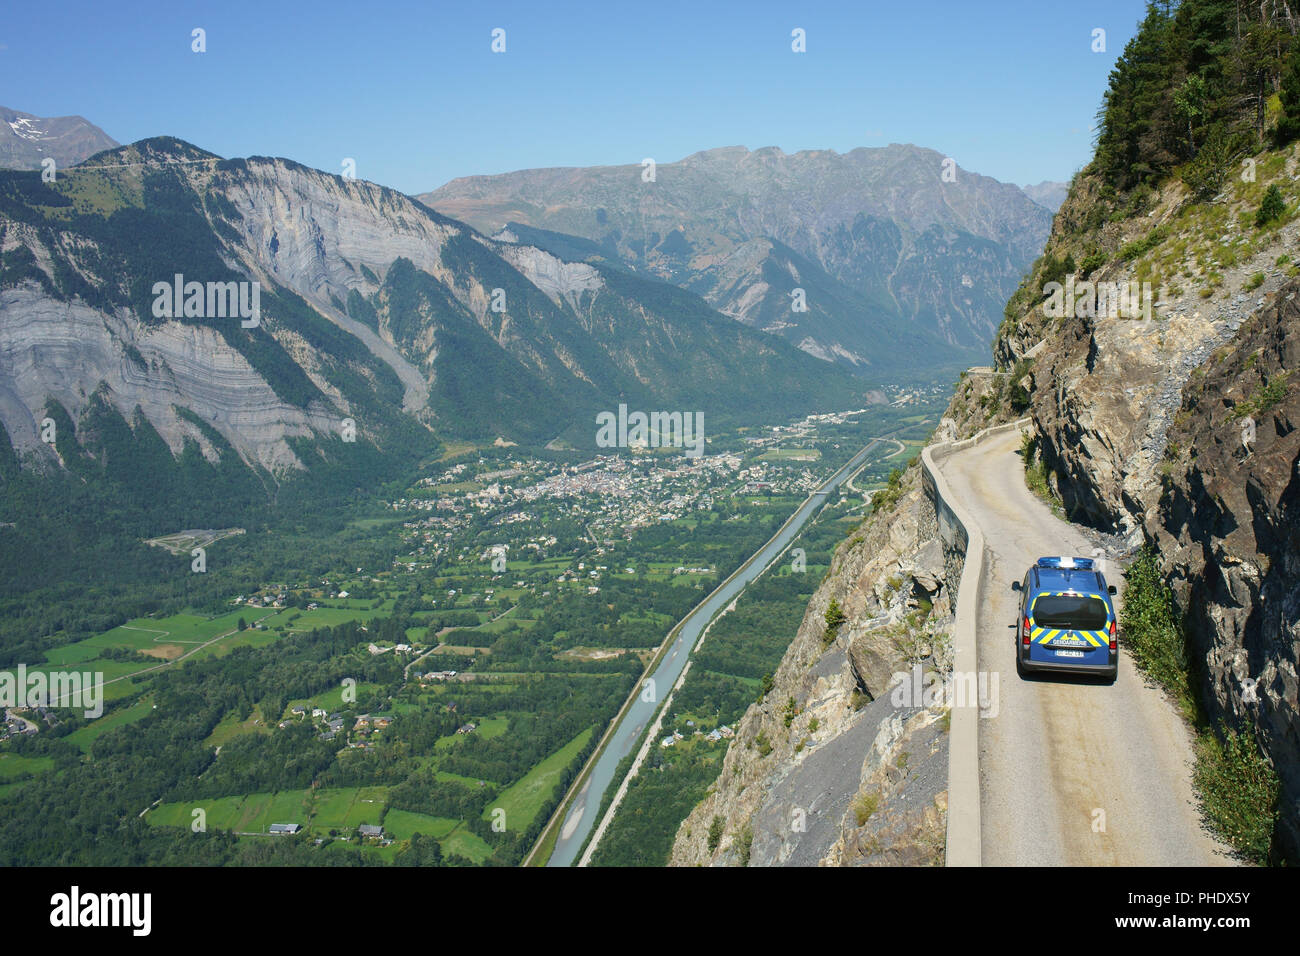 POLICE CAR CRUISING ON A CLIFF SIDE ROAD A STAGGERING 600 METER HIGH ABOVE THE VALLEY FLOOR (aerial view from a 6-meter mast). Auris, Isère, France. - Stock Image